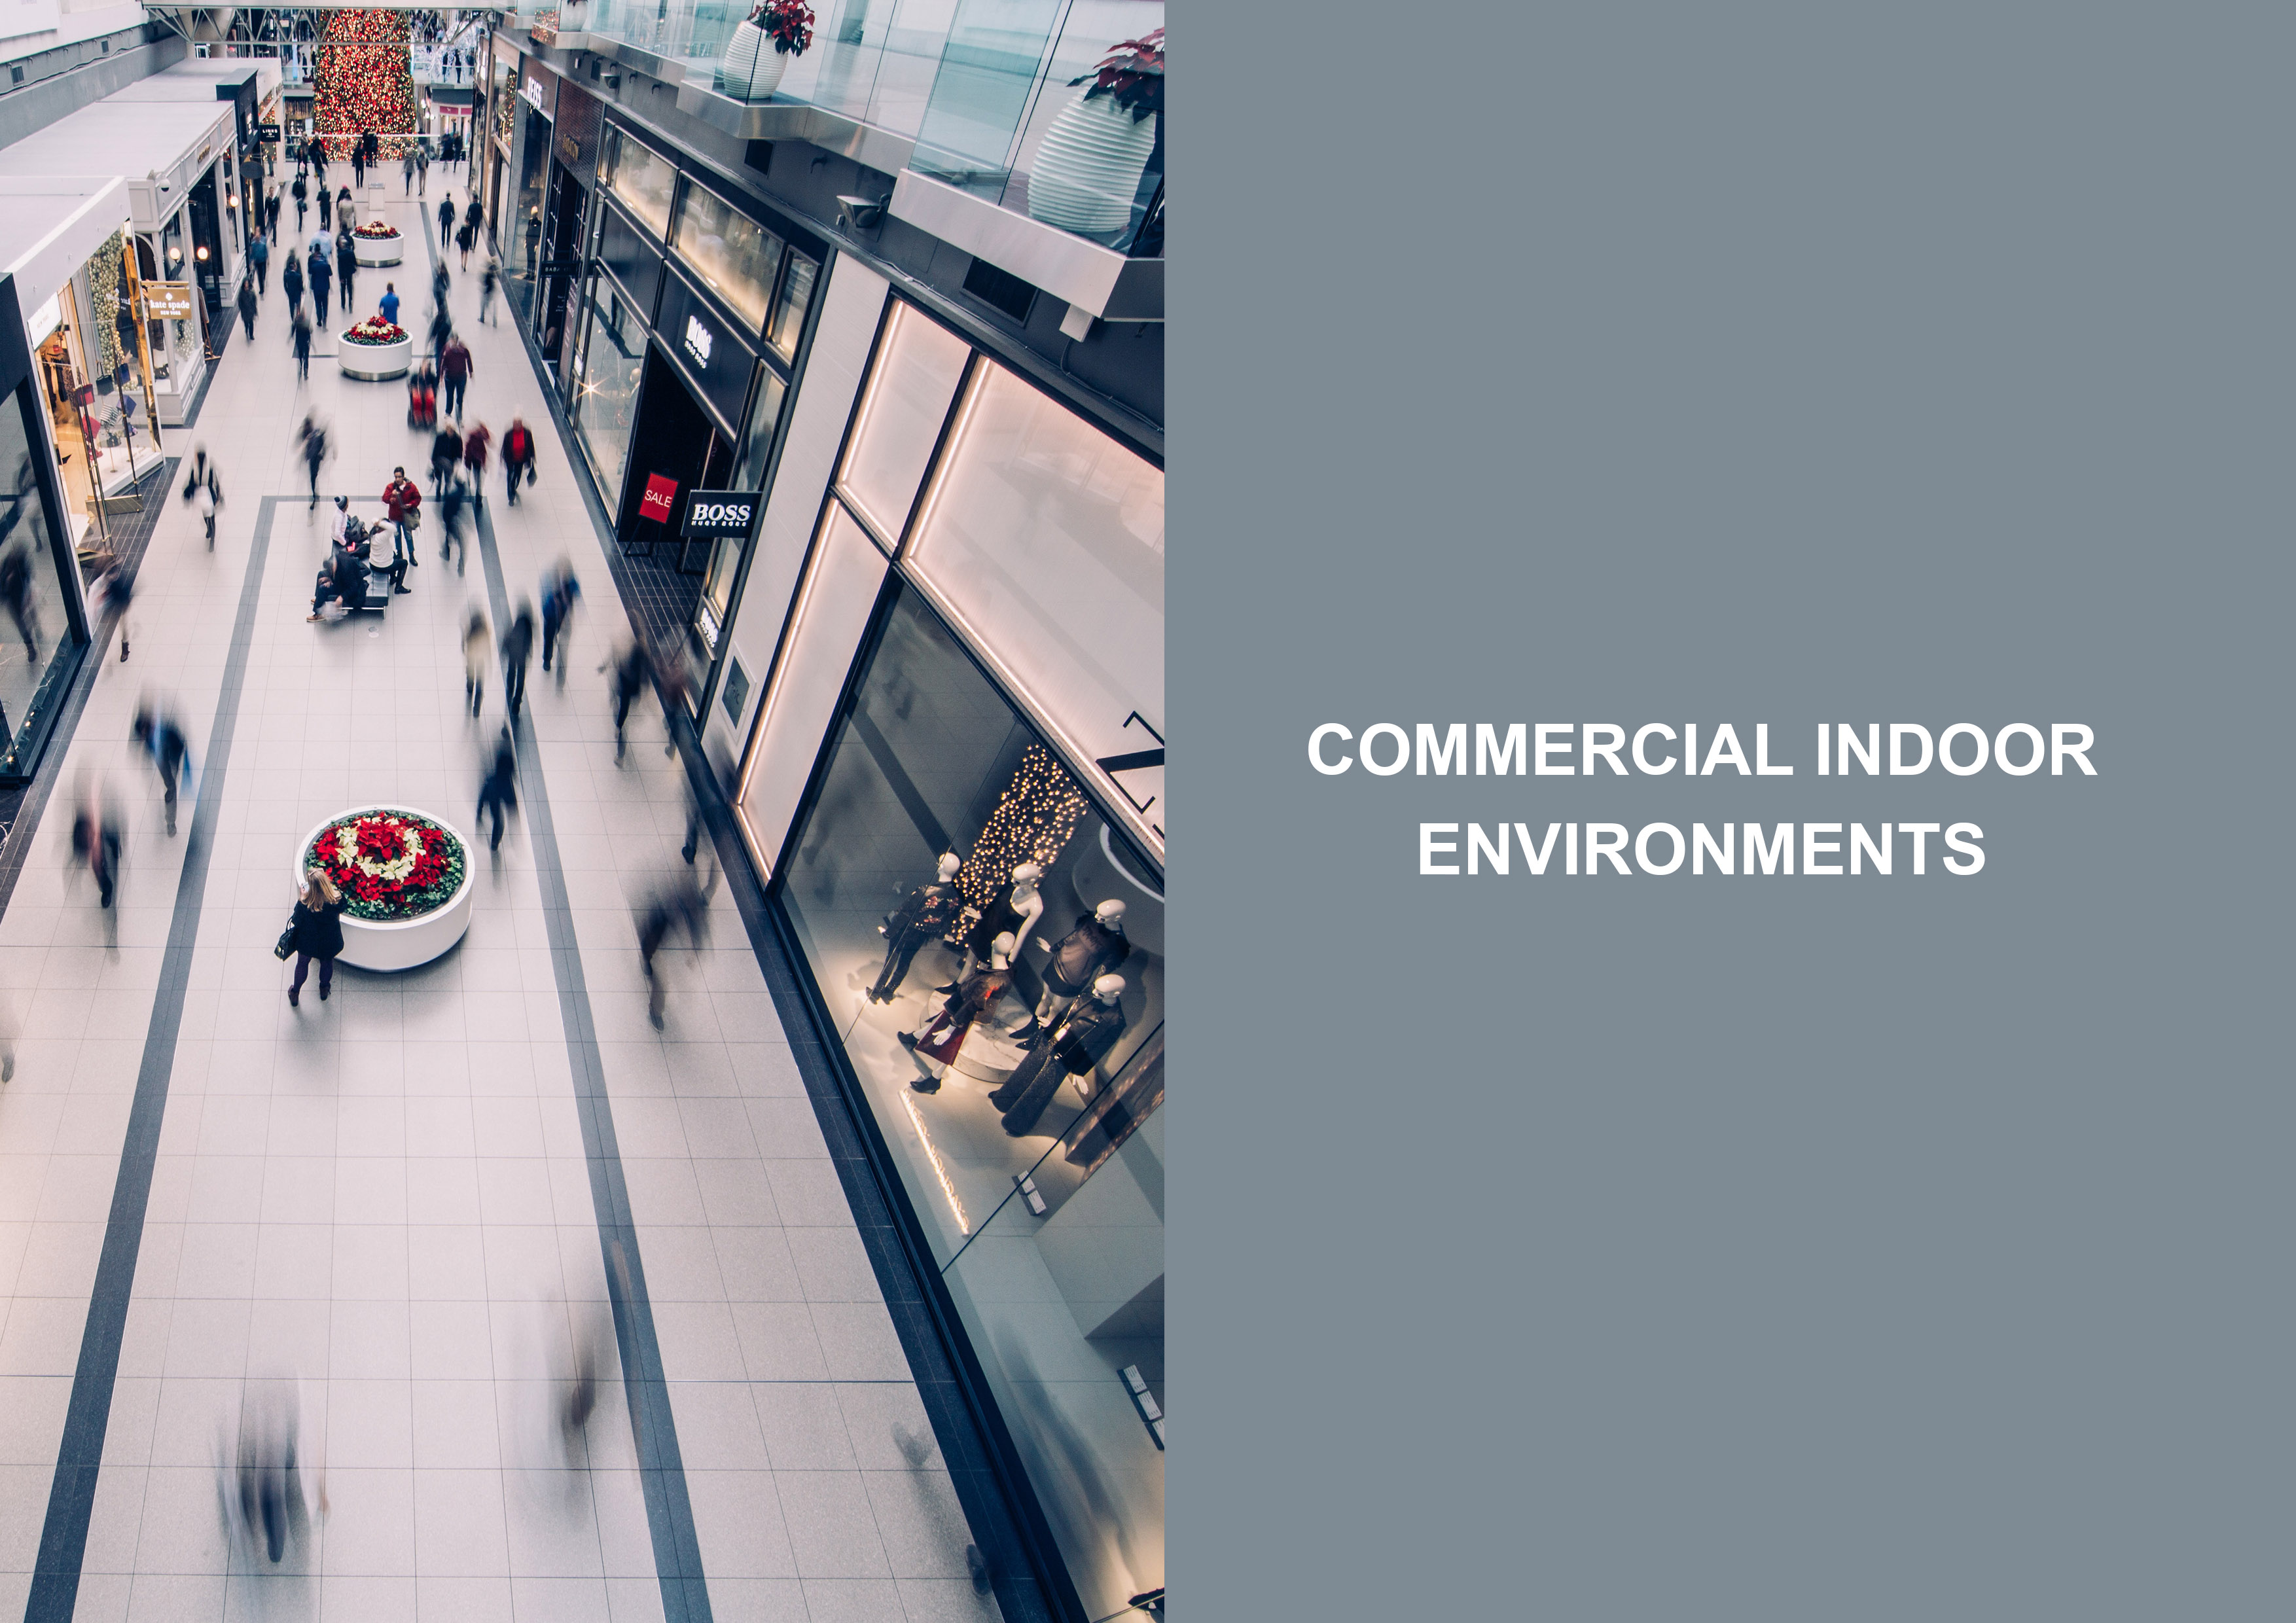 Commercial Indoor Environments